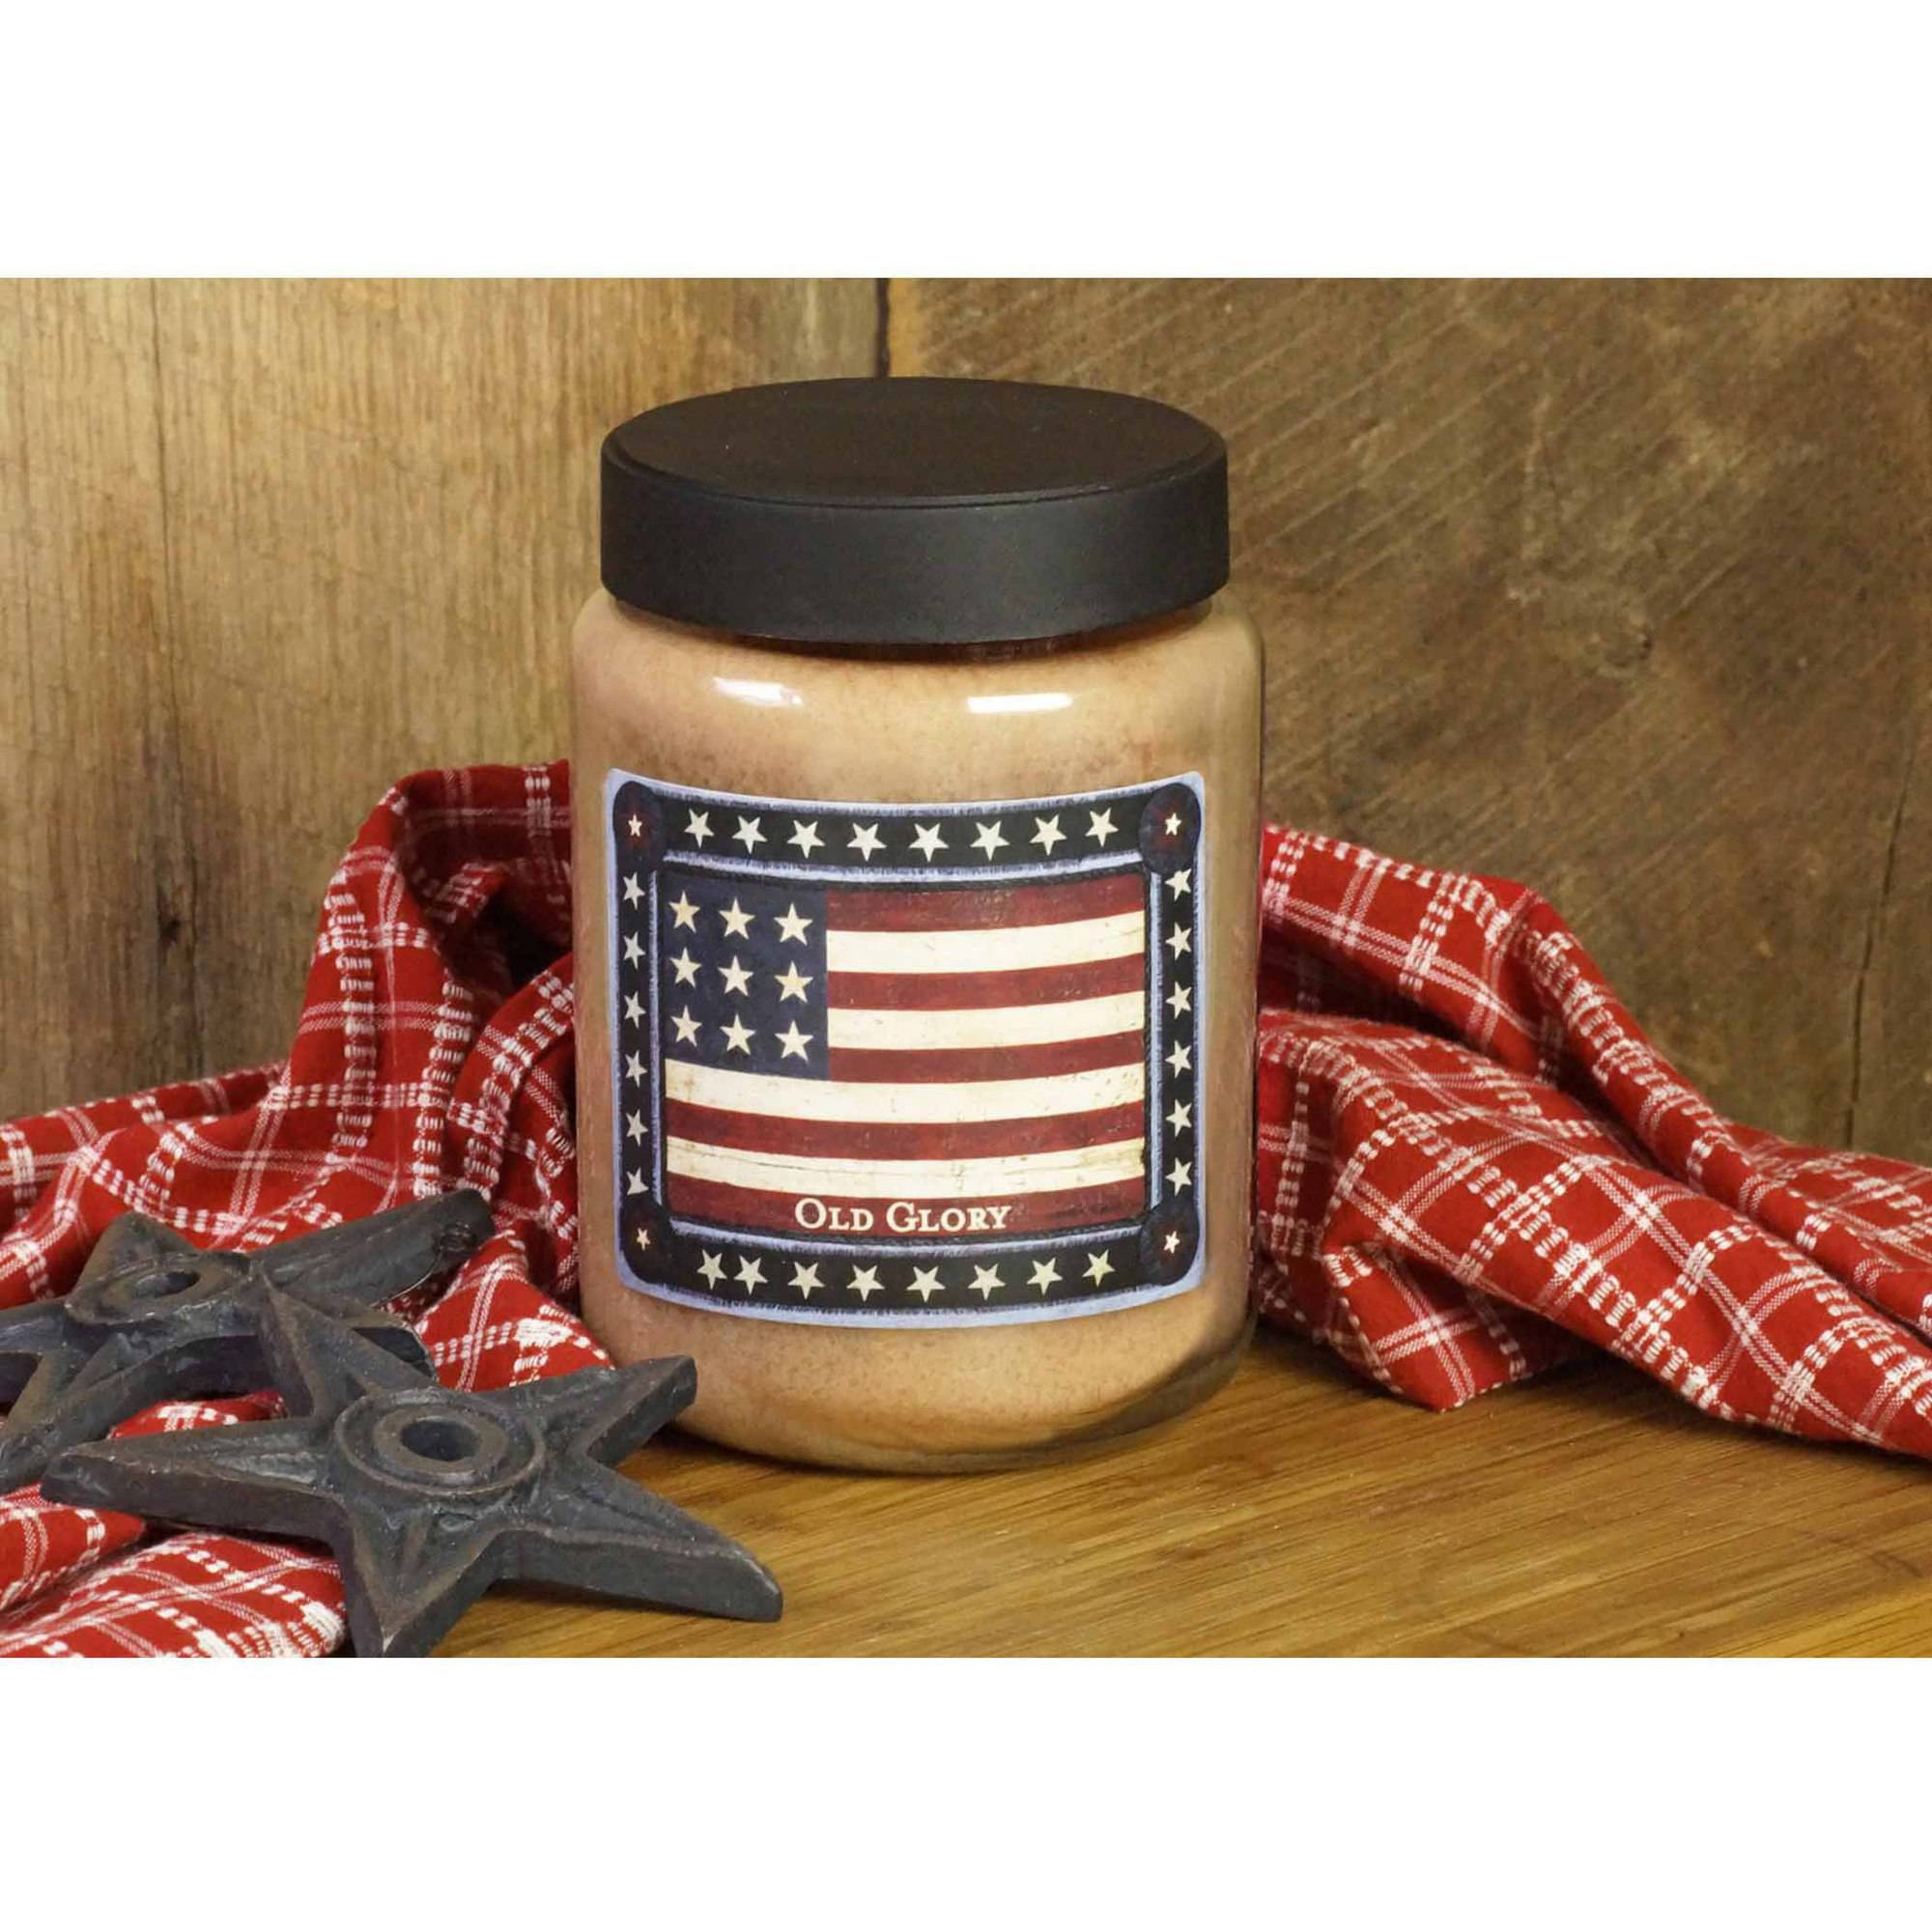 Old Glory 26 oz. Candle,  Patriotic by Lang Companies